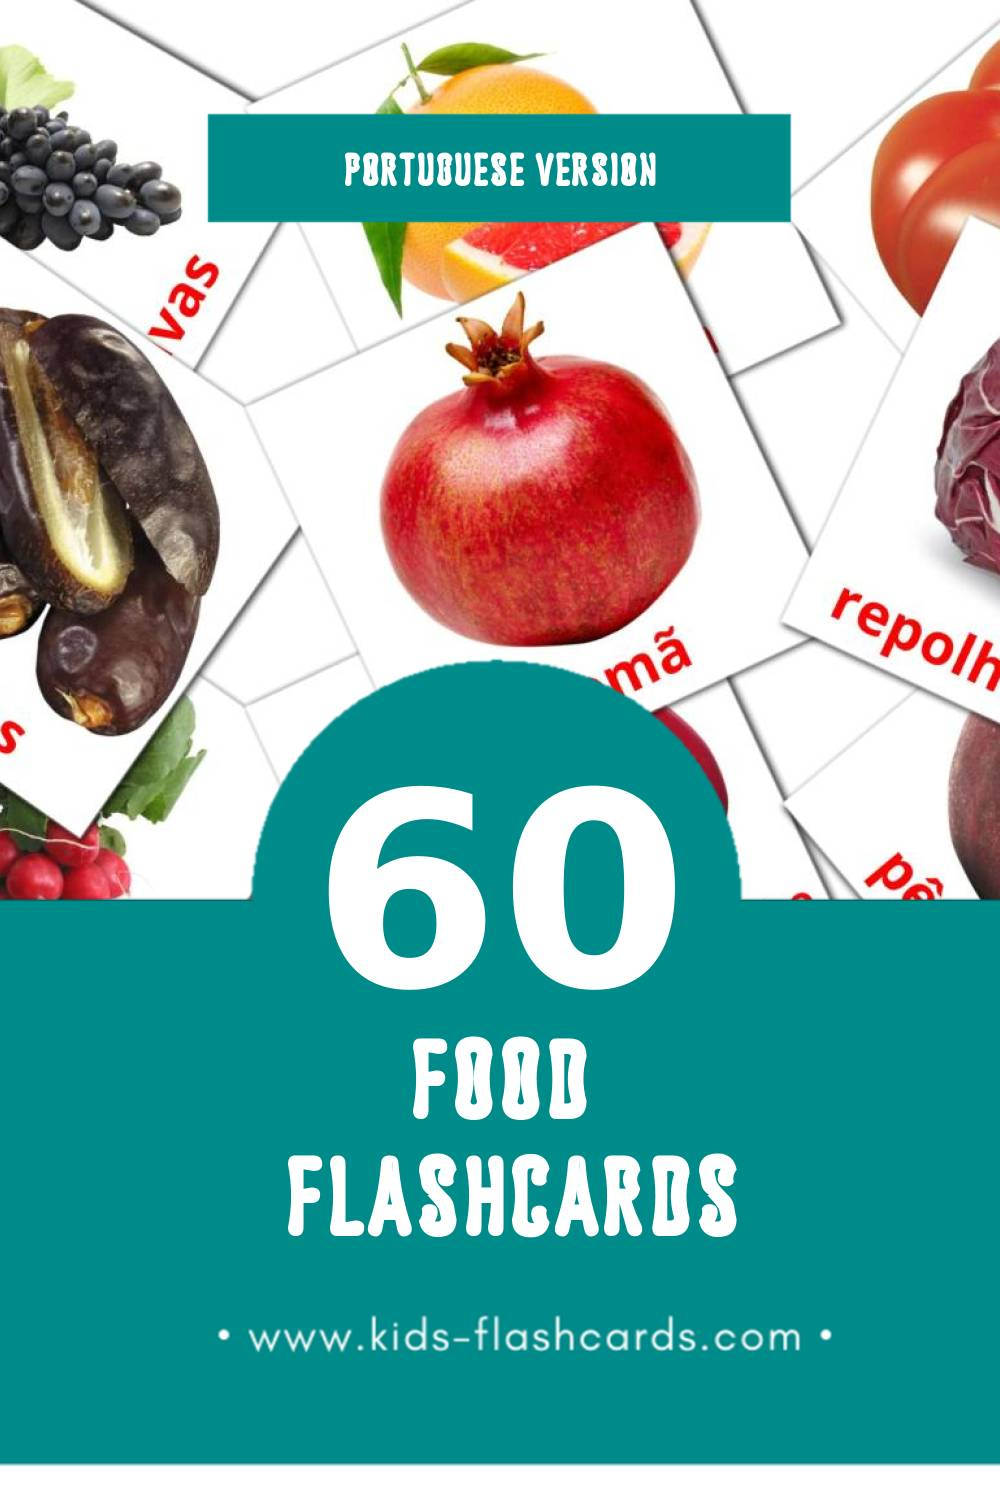 Visual Comida Flashcards for Toddlers (60 cards in Portuguese)